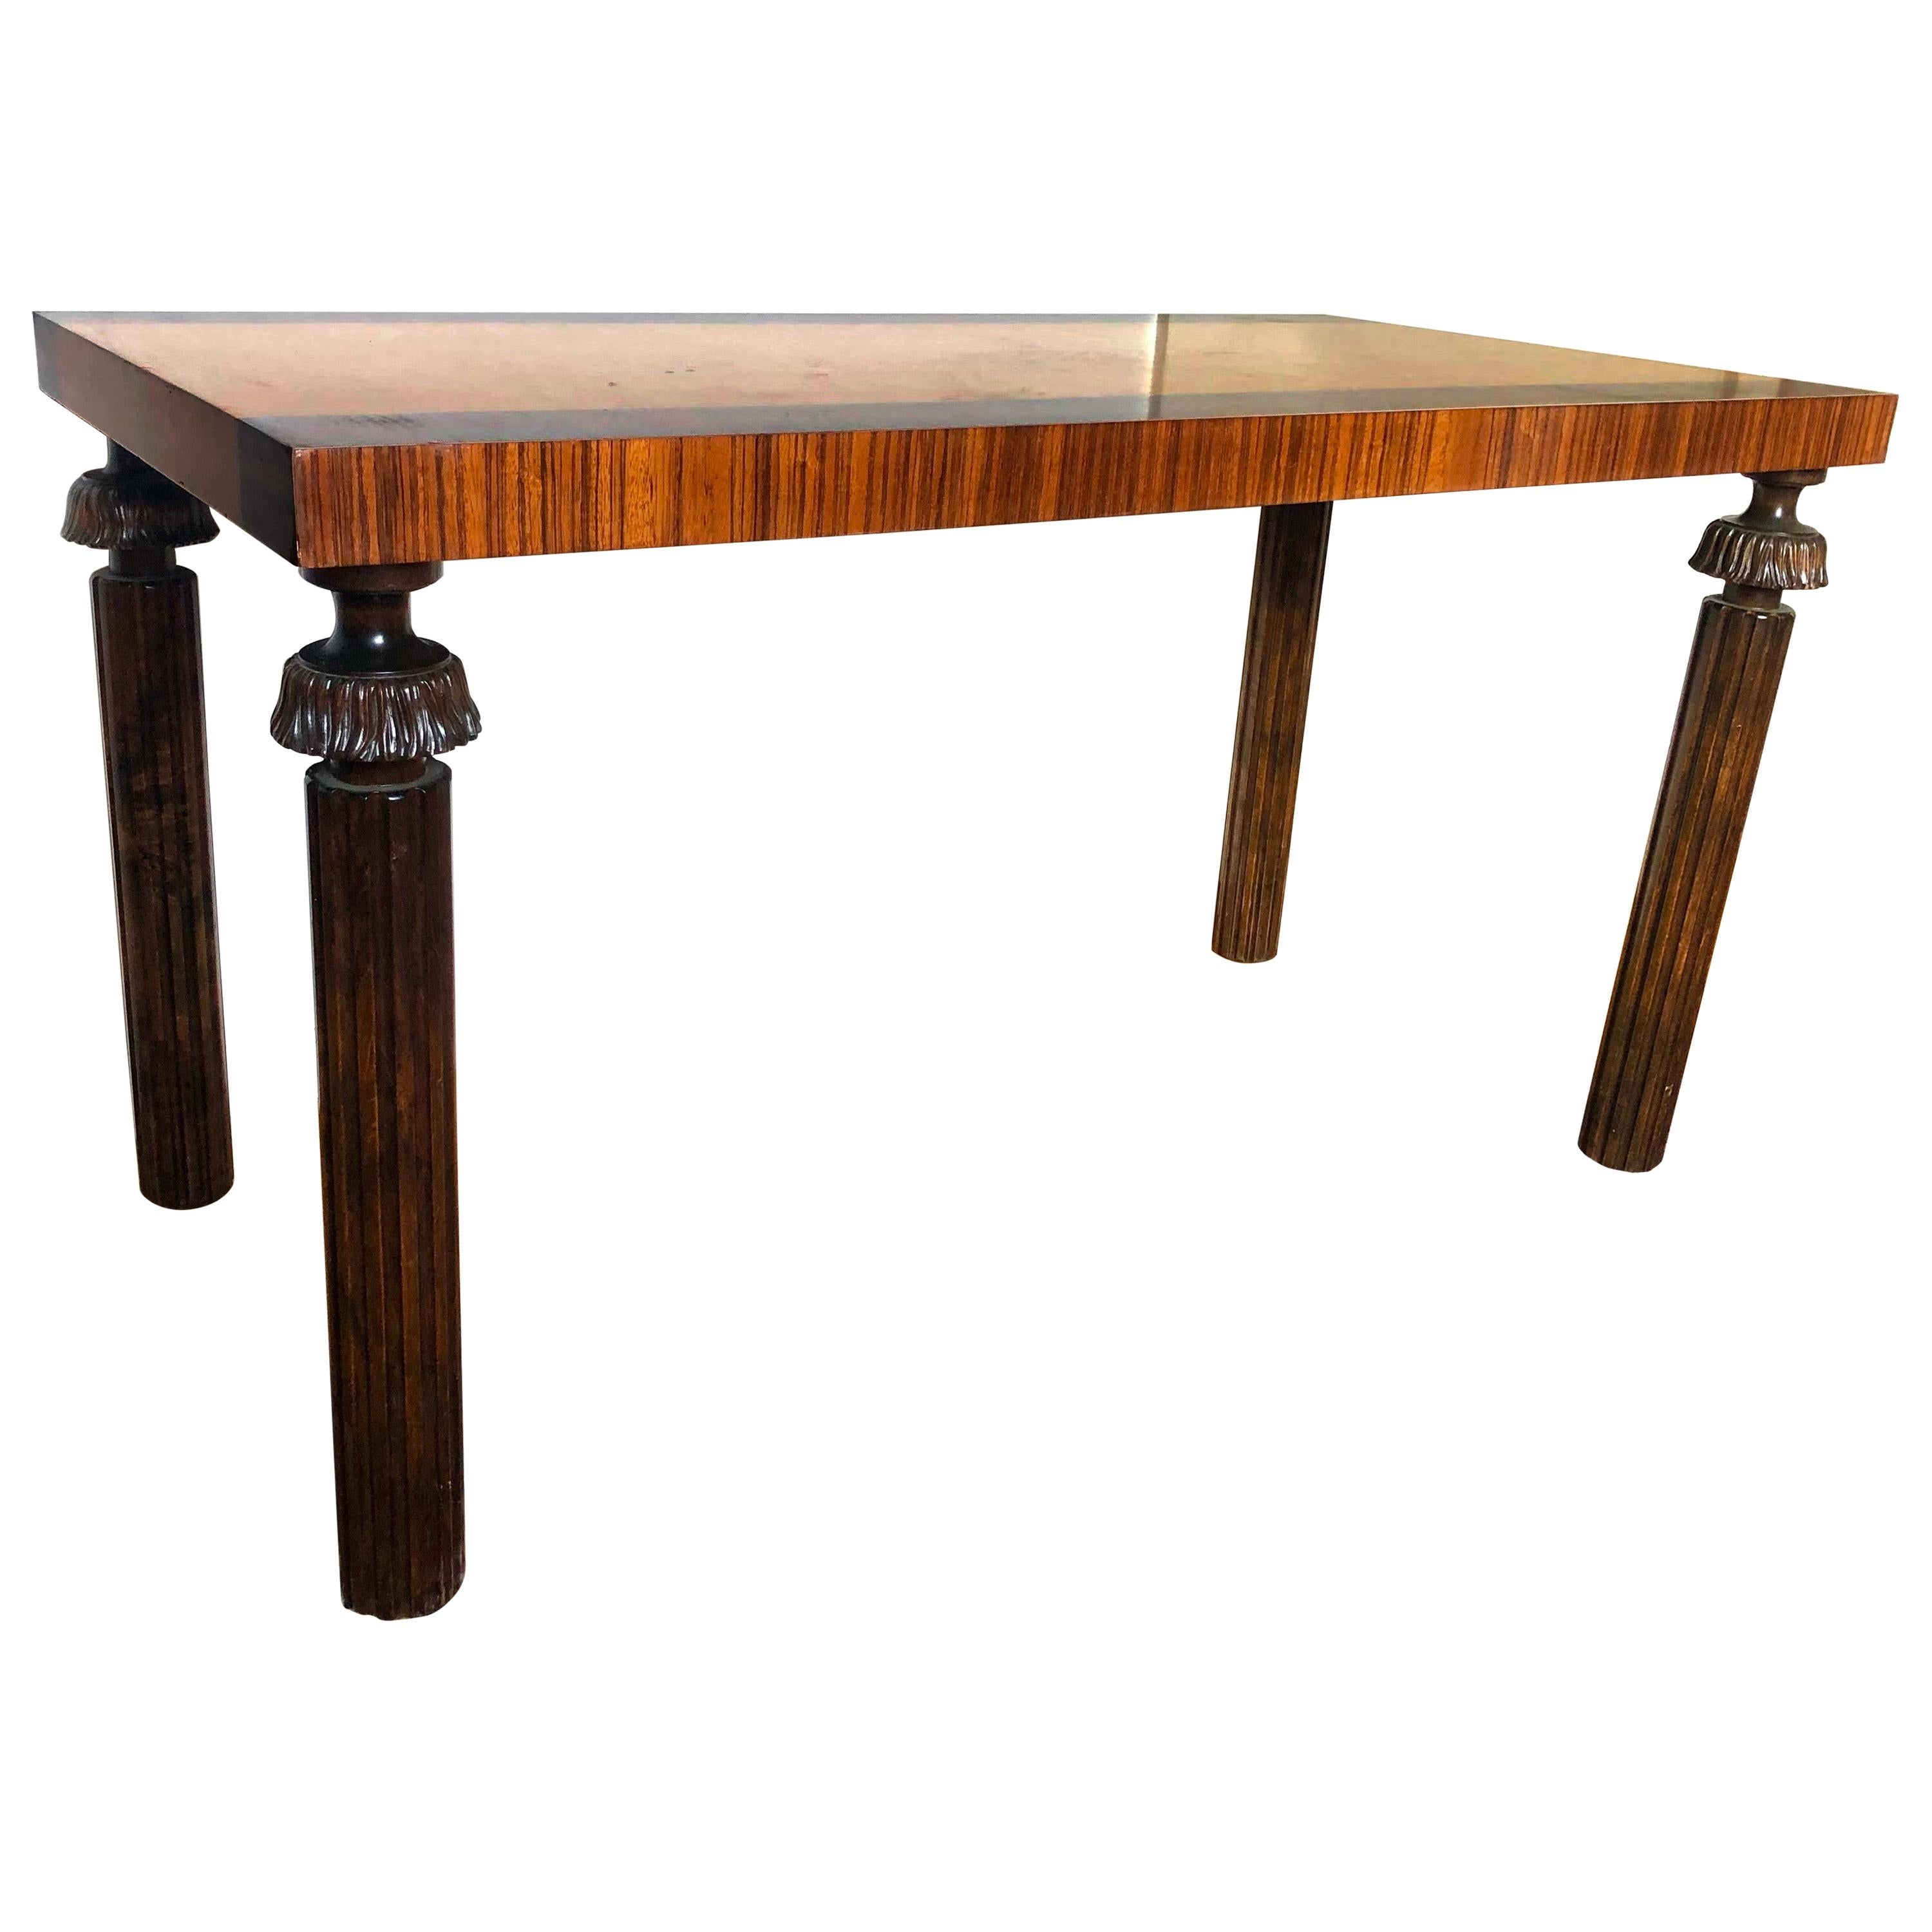 Swedish Grace Period Console or Sofa Table by Reiners Möbelfabrik